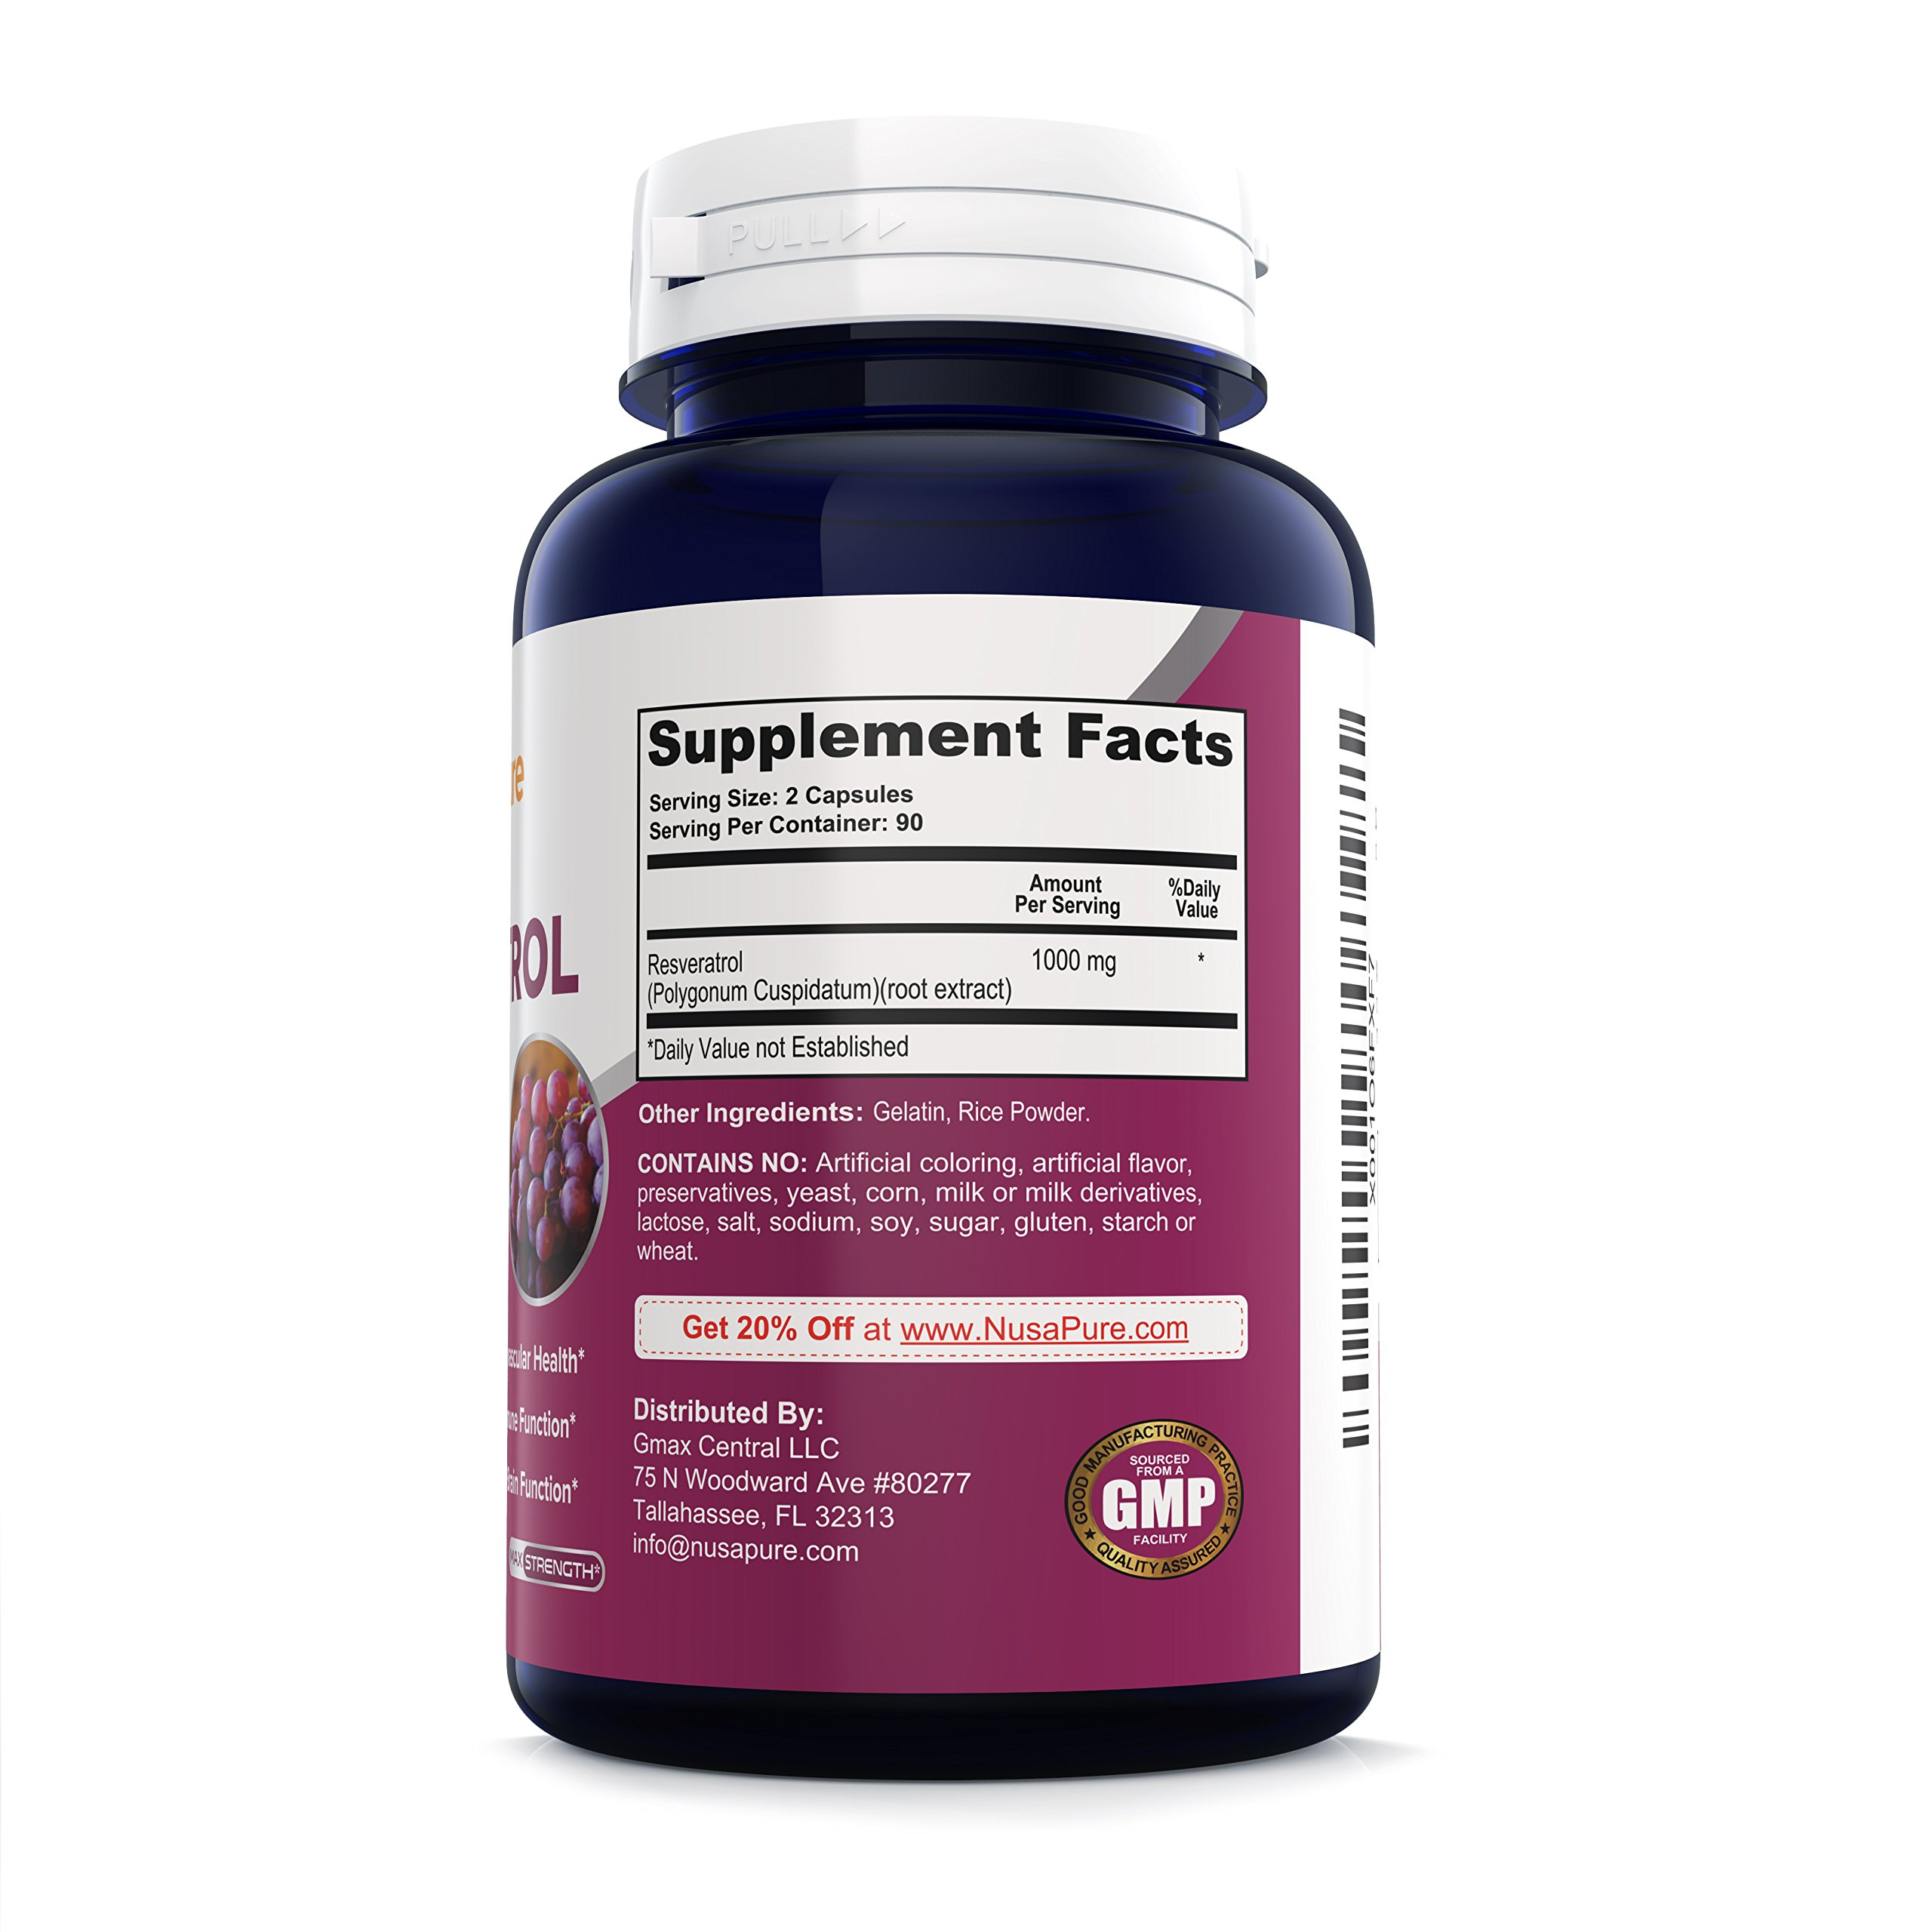 Best Resveratrol 1000mg 180caps (Non-GMO & Gluten Free) Promotes Heart Health and Balances Blood Pressure, Helps Balance Hormones - Proudly Made in USA - 100% Money Back Guarantee! by NusaPure (Image #2)